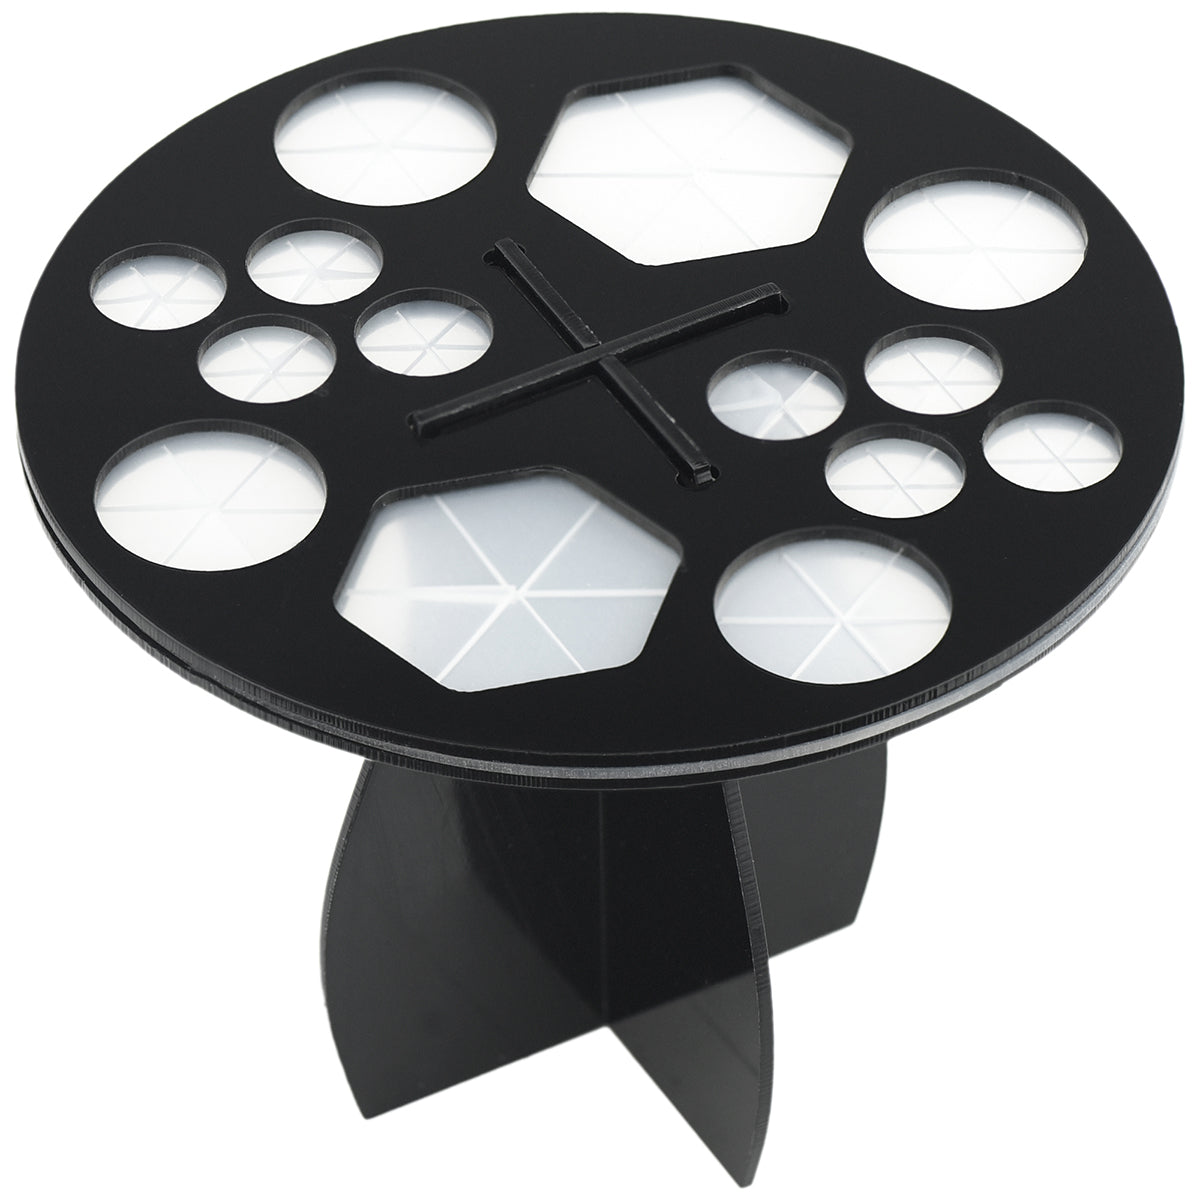 A black acrylic round shape makeup brushes drying rack with 14 silicone holes. Two holes are in hexagon shape, the rest of holes are round.